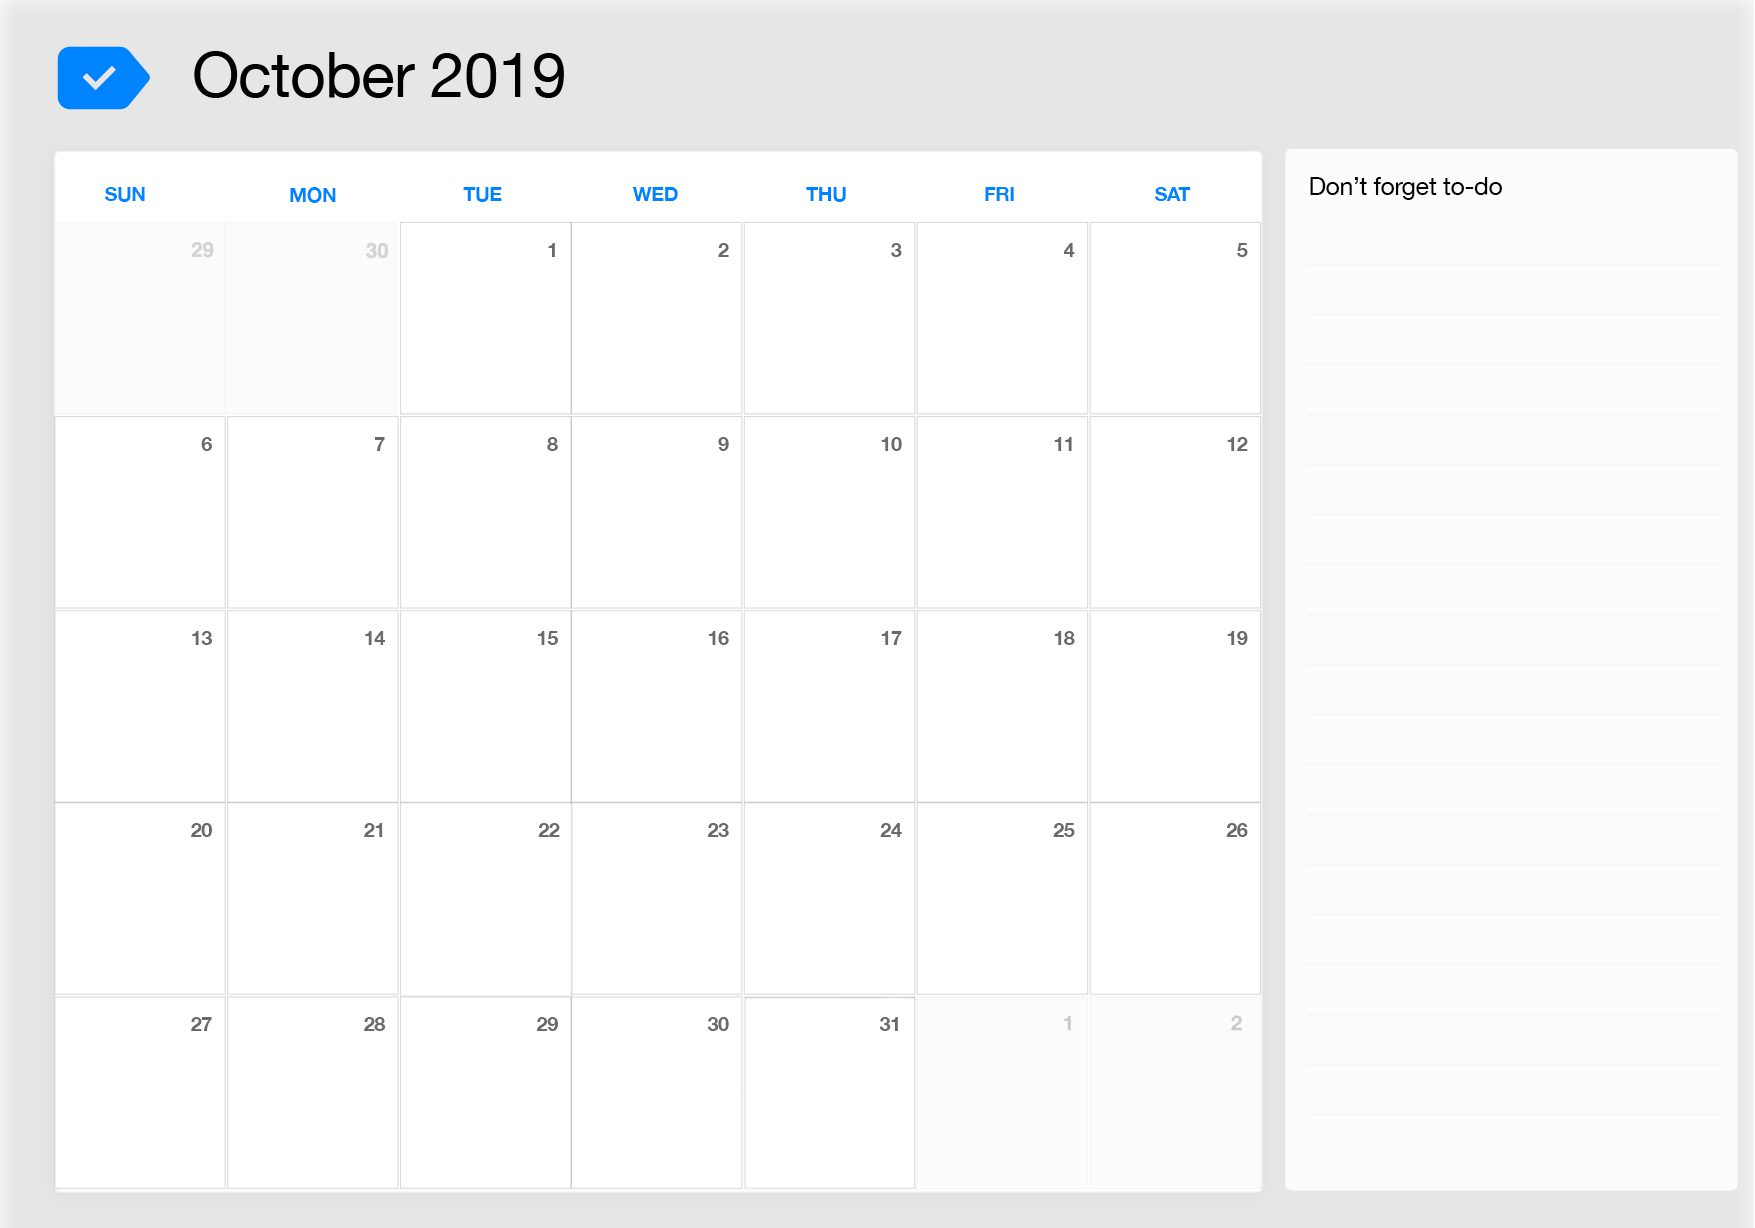 October 2019 Calendar Excel to do list